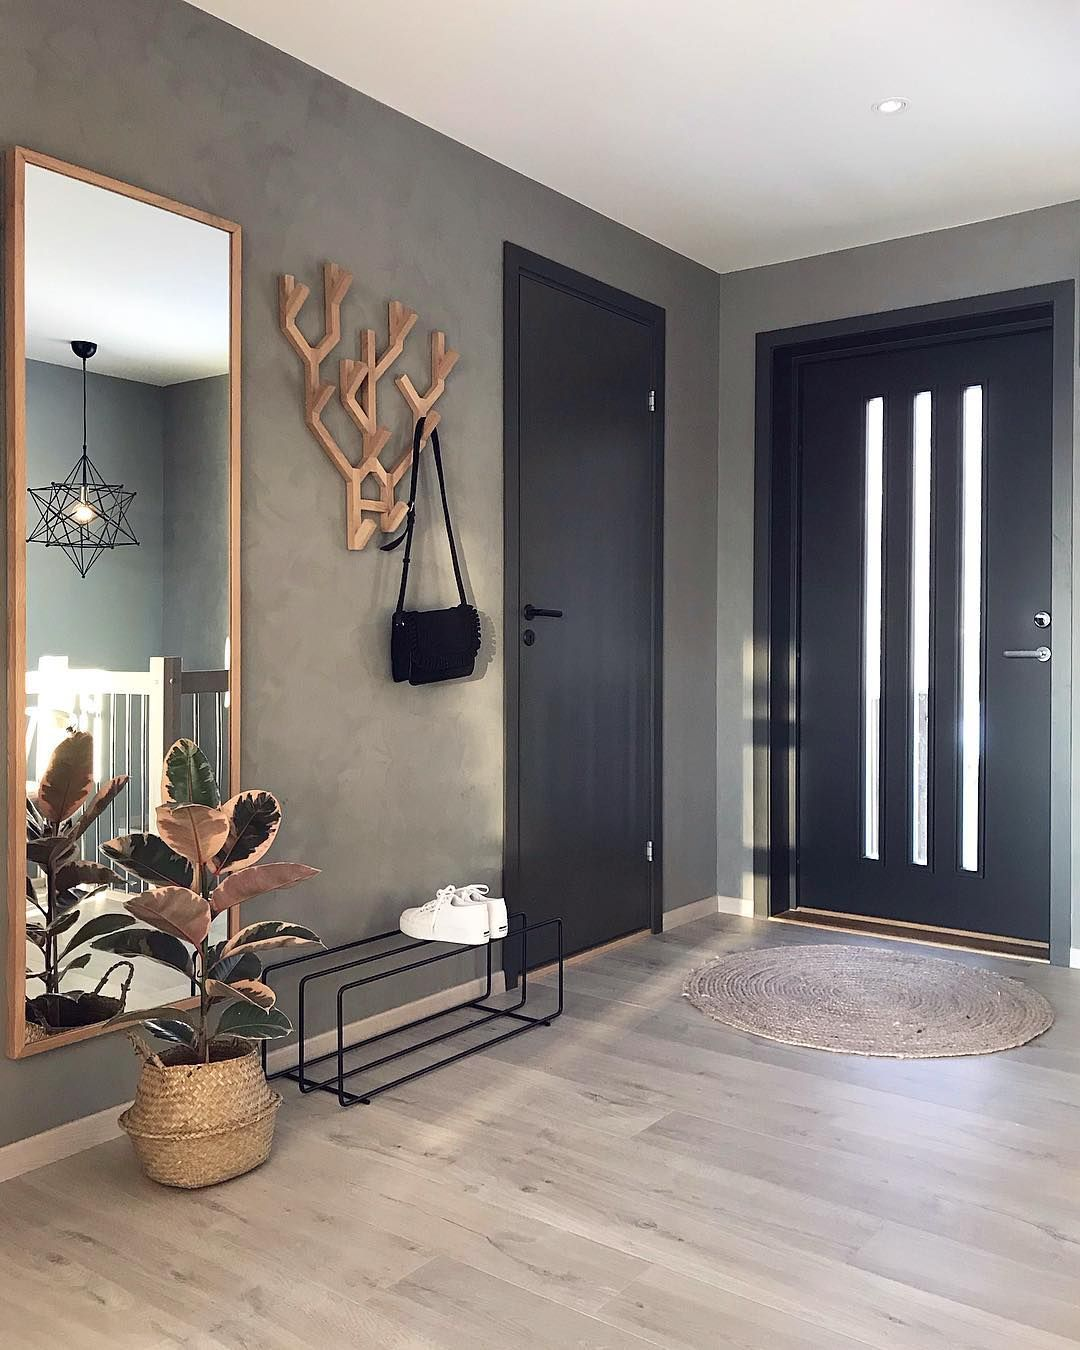 Home interior design room house also for shoes homedecorhallway in pinterest rh